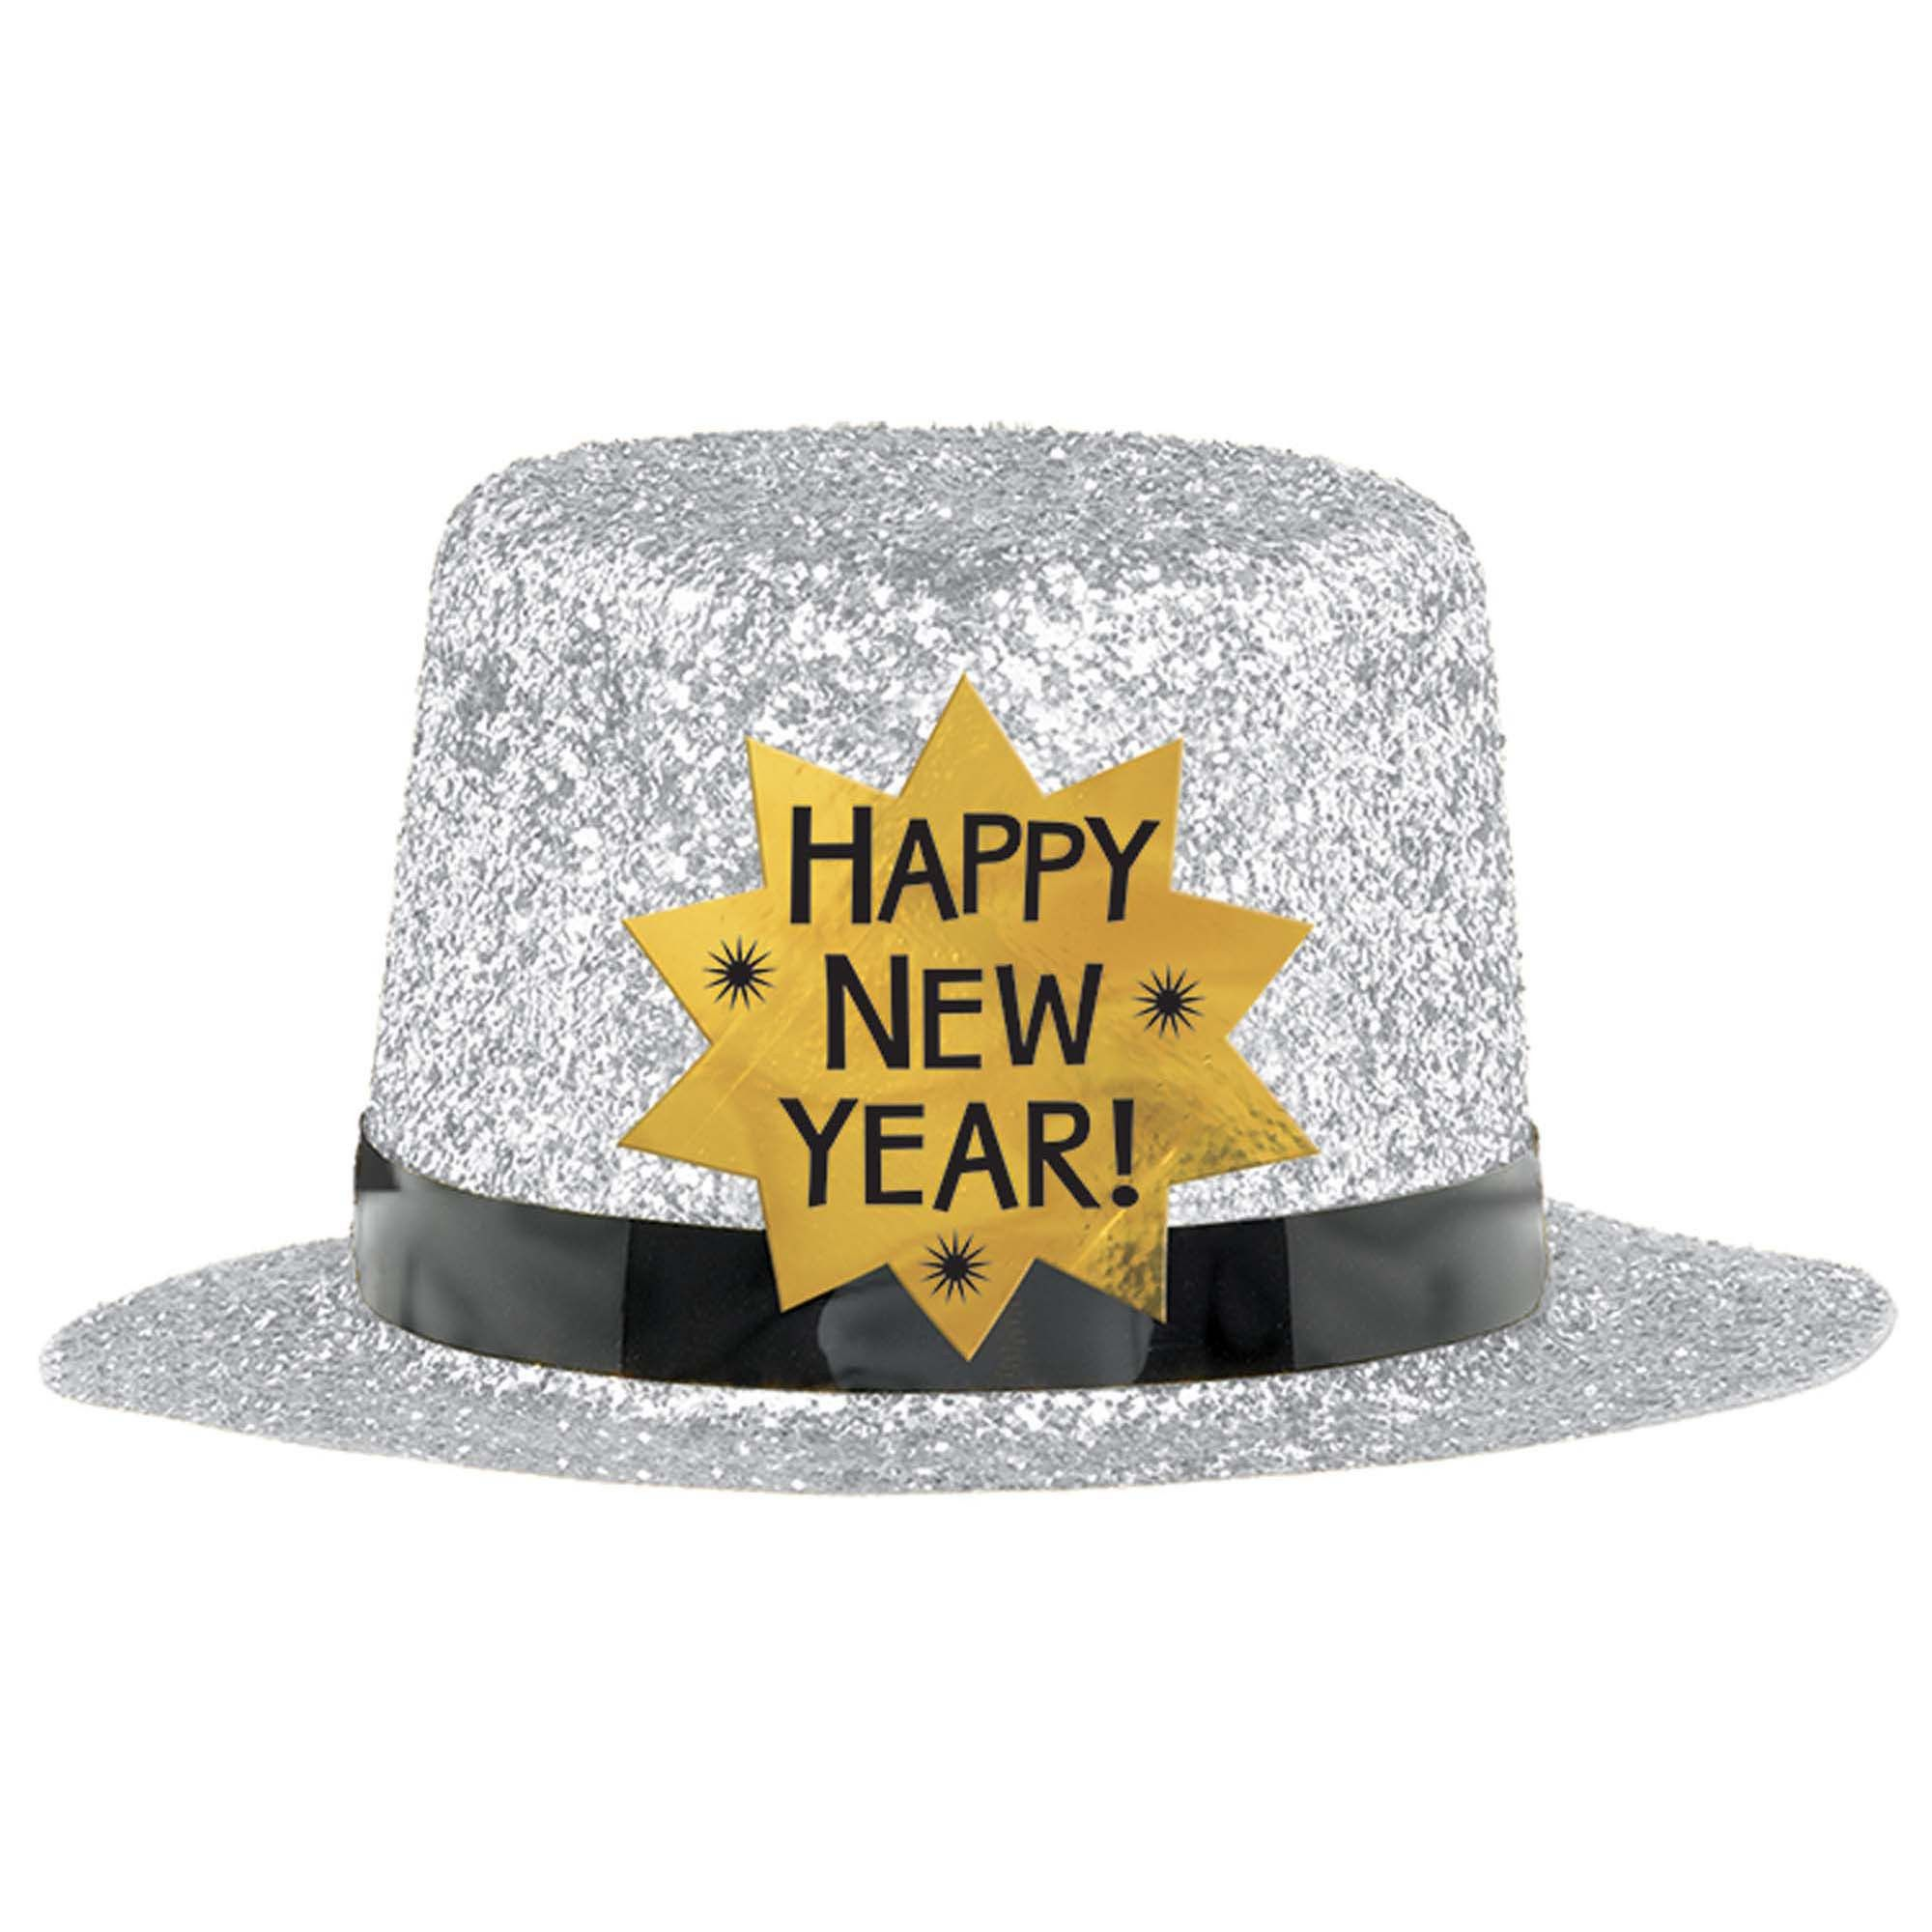 HNY Mini Top Hat Silver